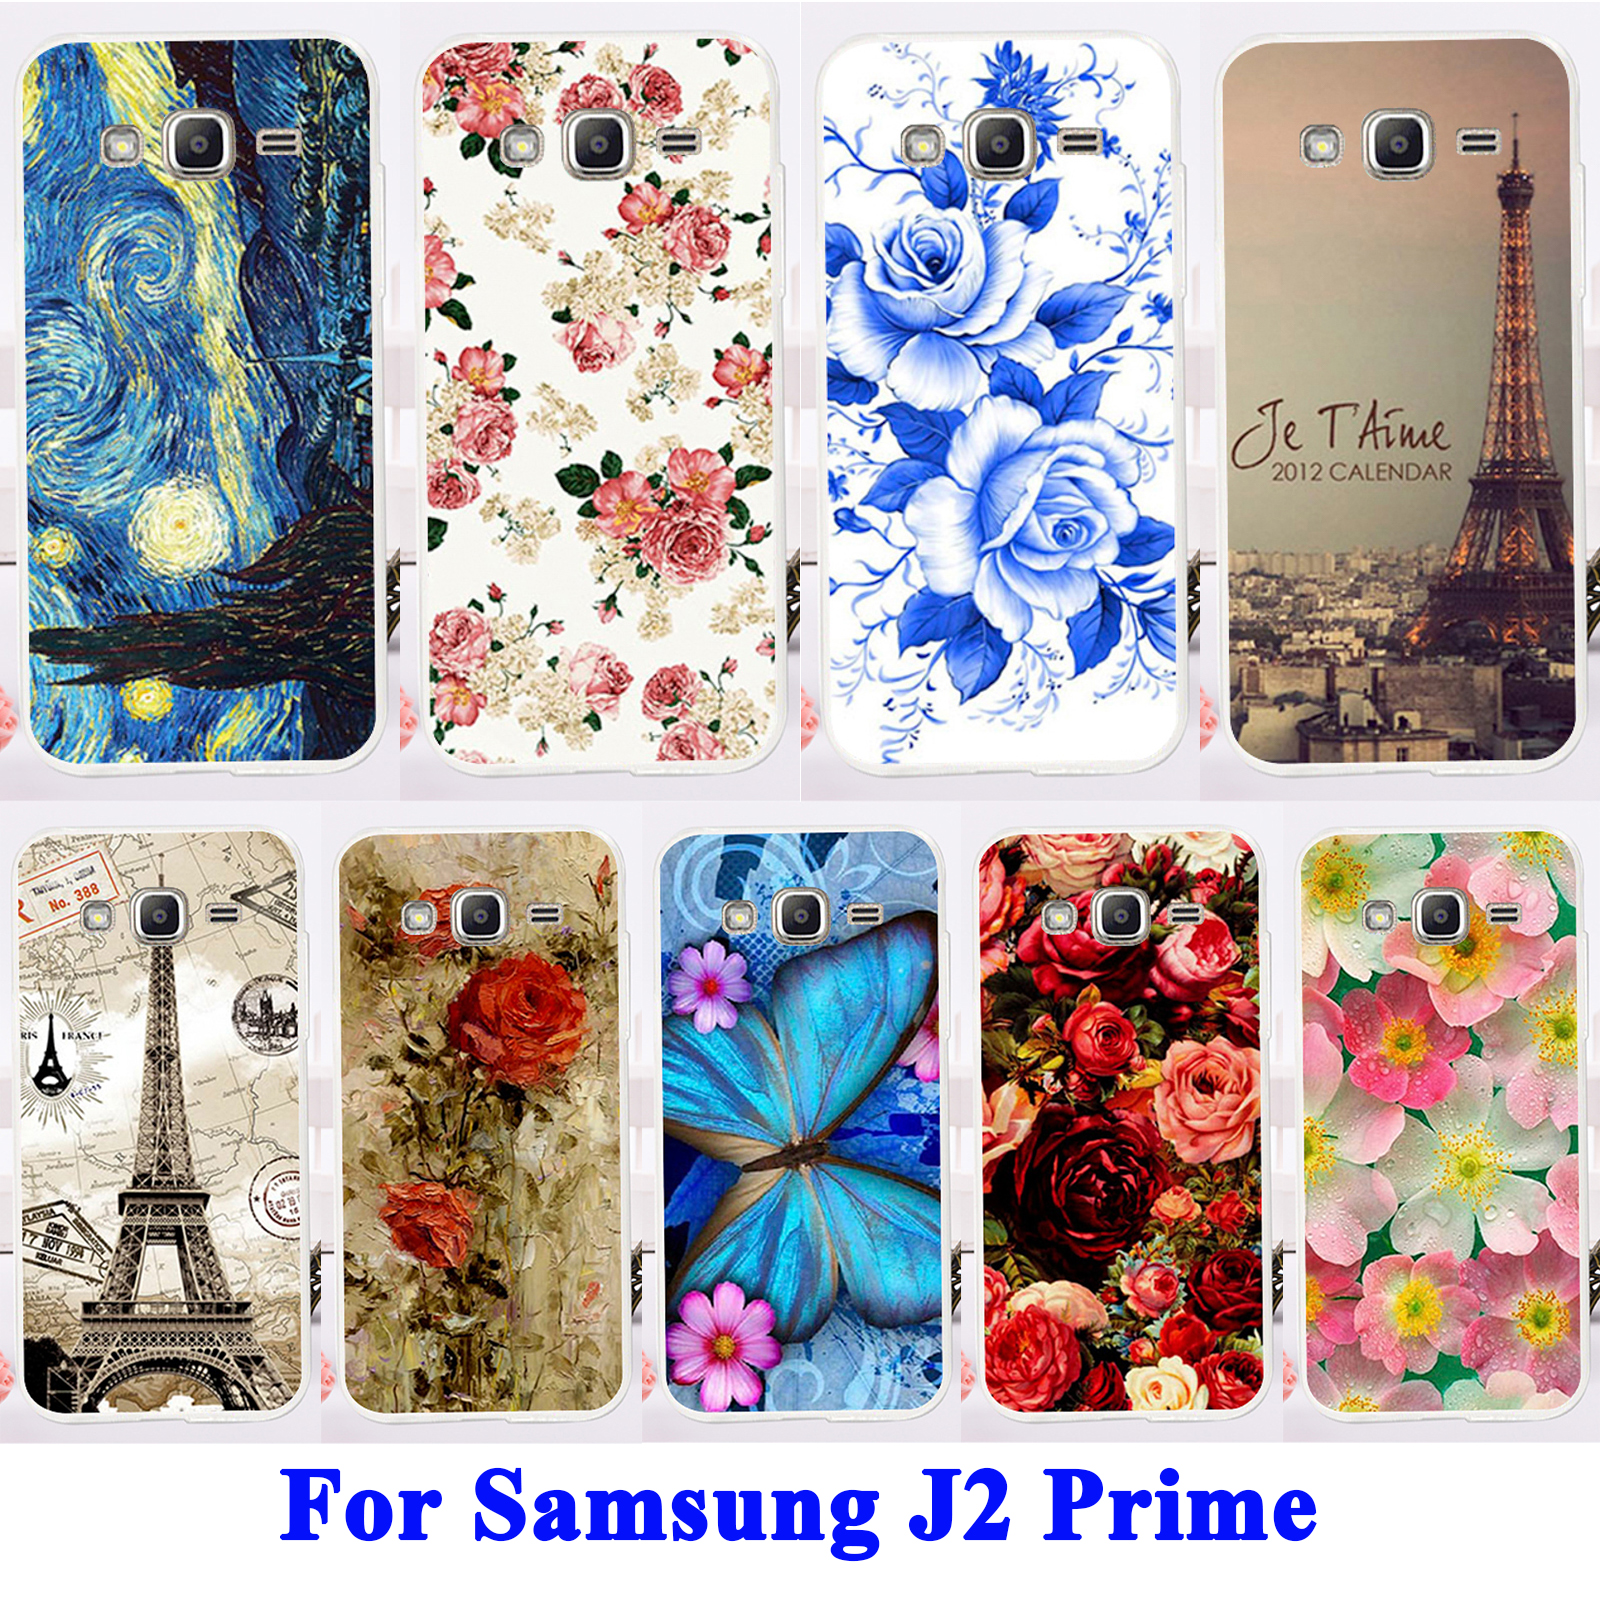 Flexible Silicon Cell Phone Shell Hood For Samsung Galaxy J2 Prime Housing Bags Rose Peony Flower Grand Prime 2016 SM G532F